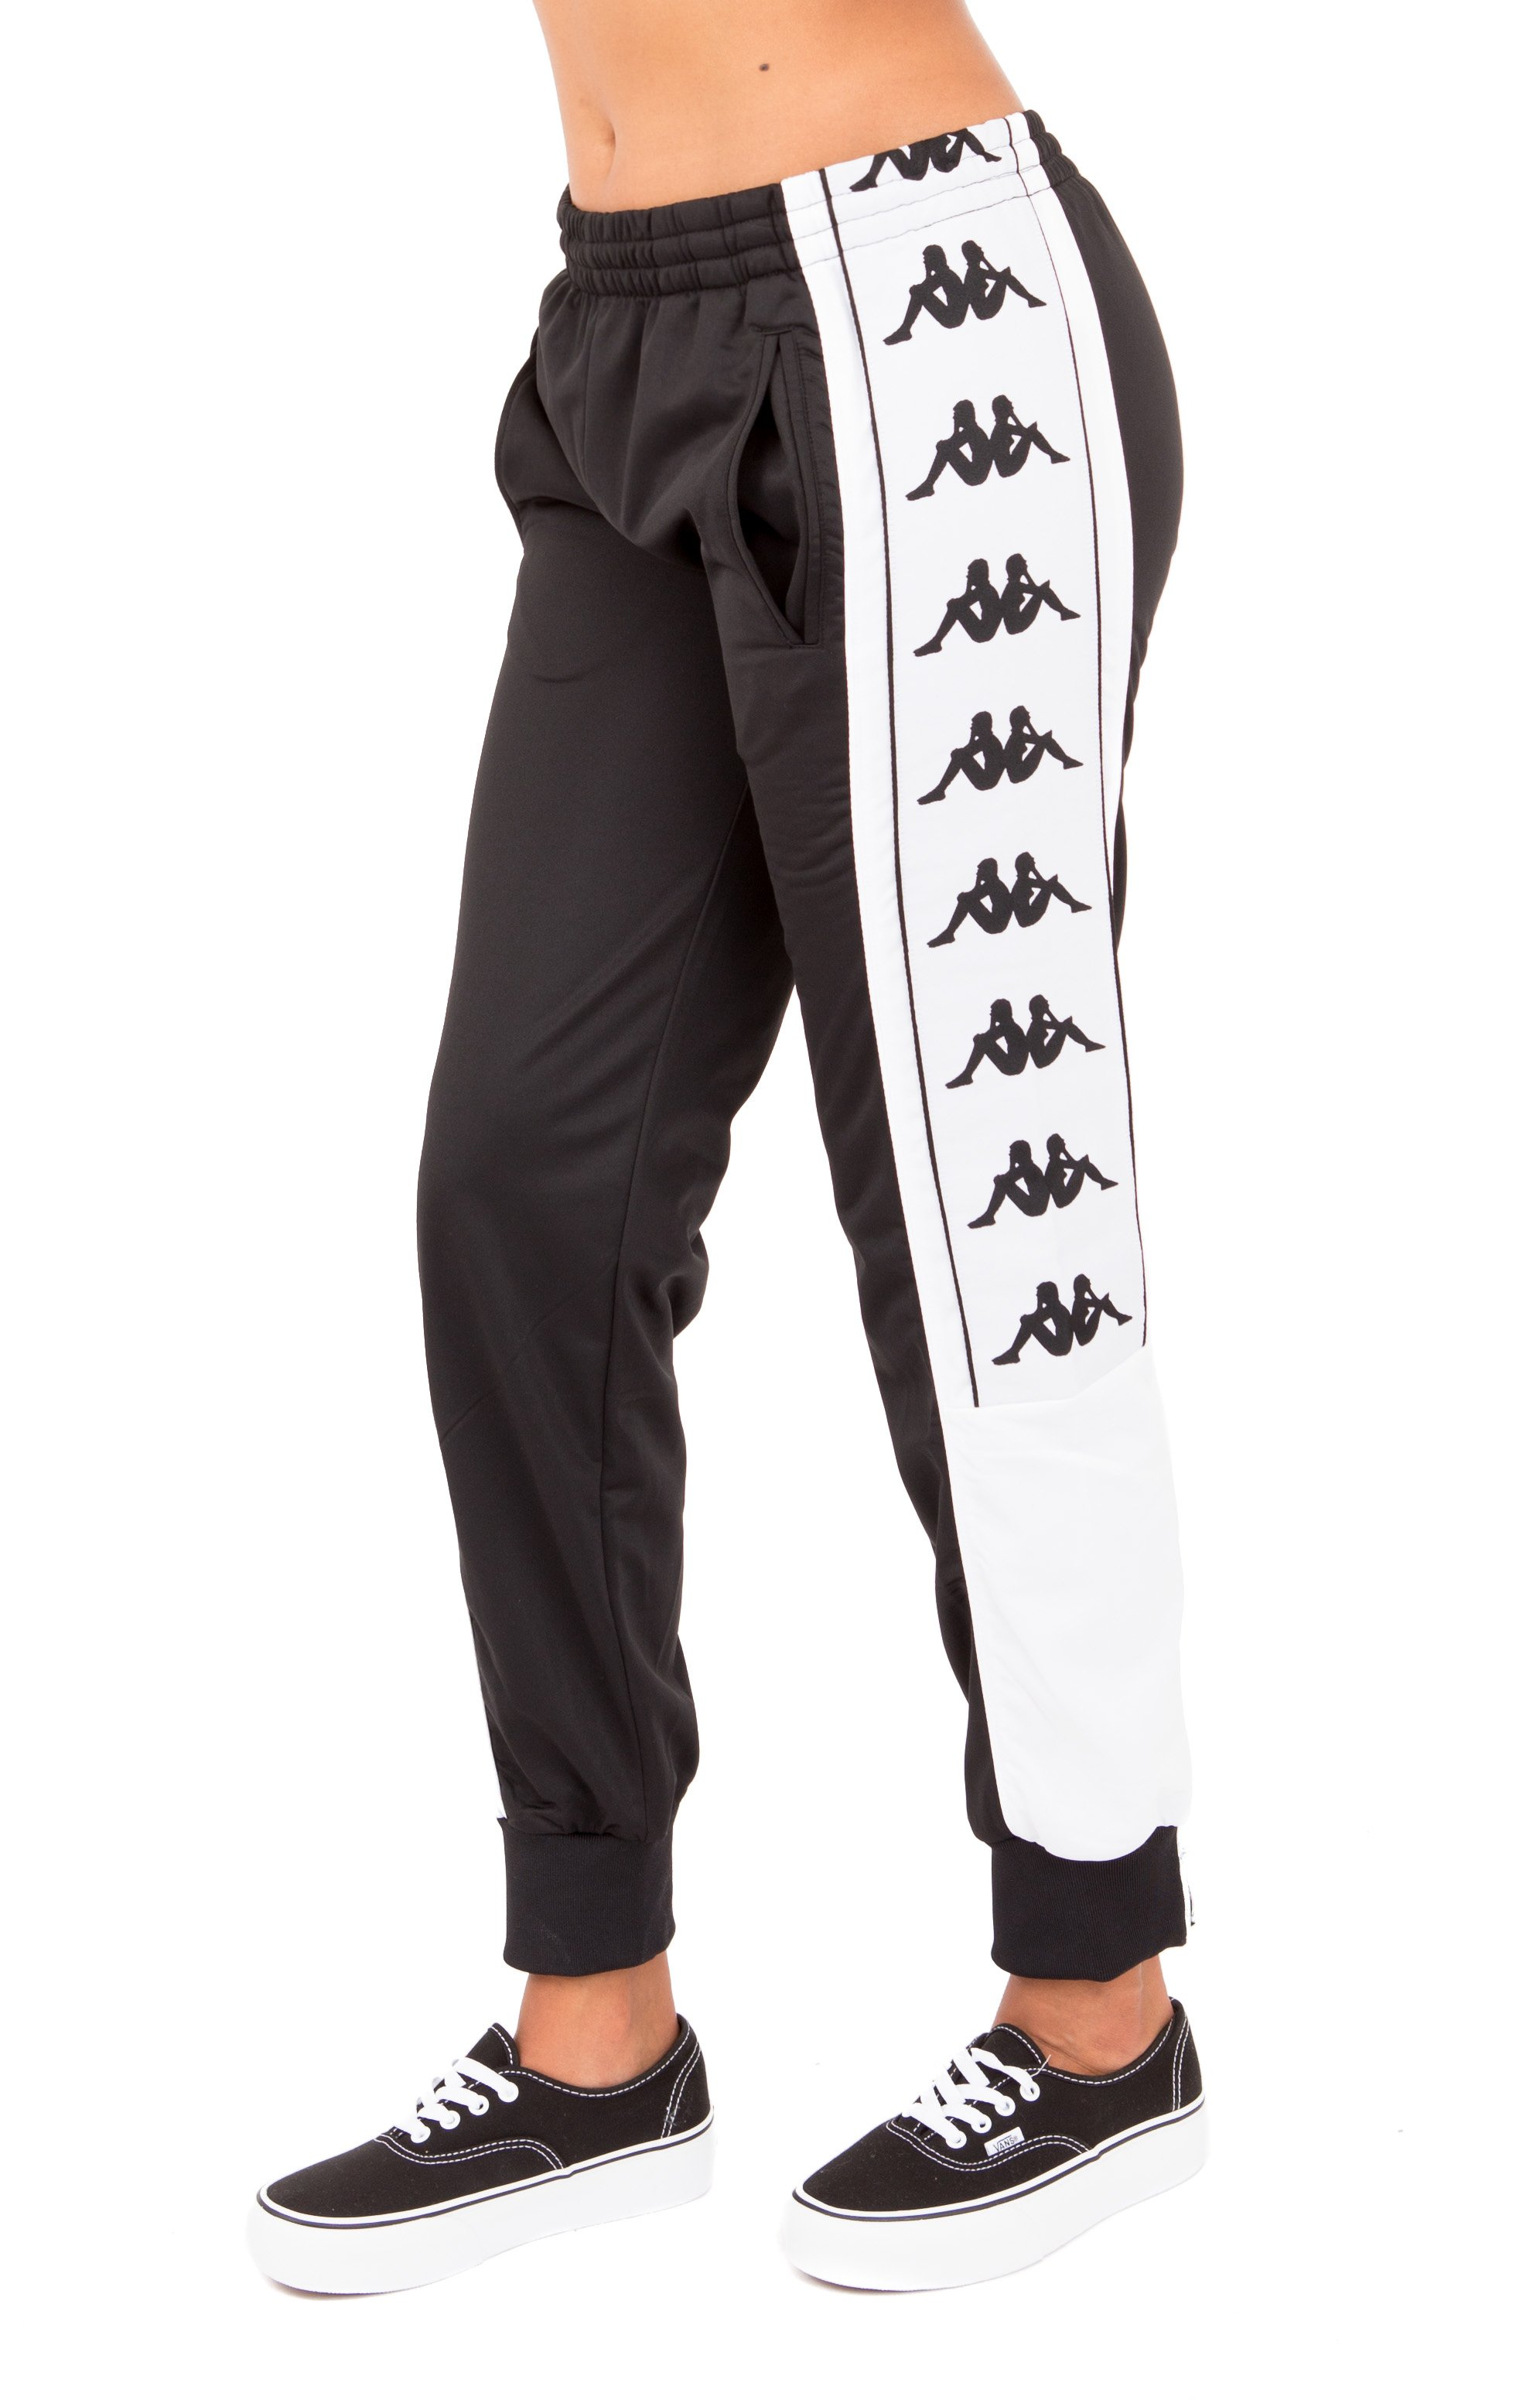 222 Banda 10 Arsis Track Pants - Black/White